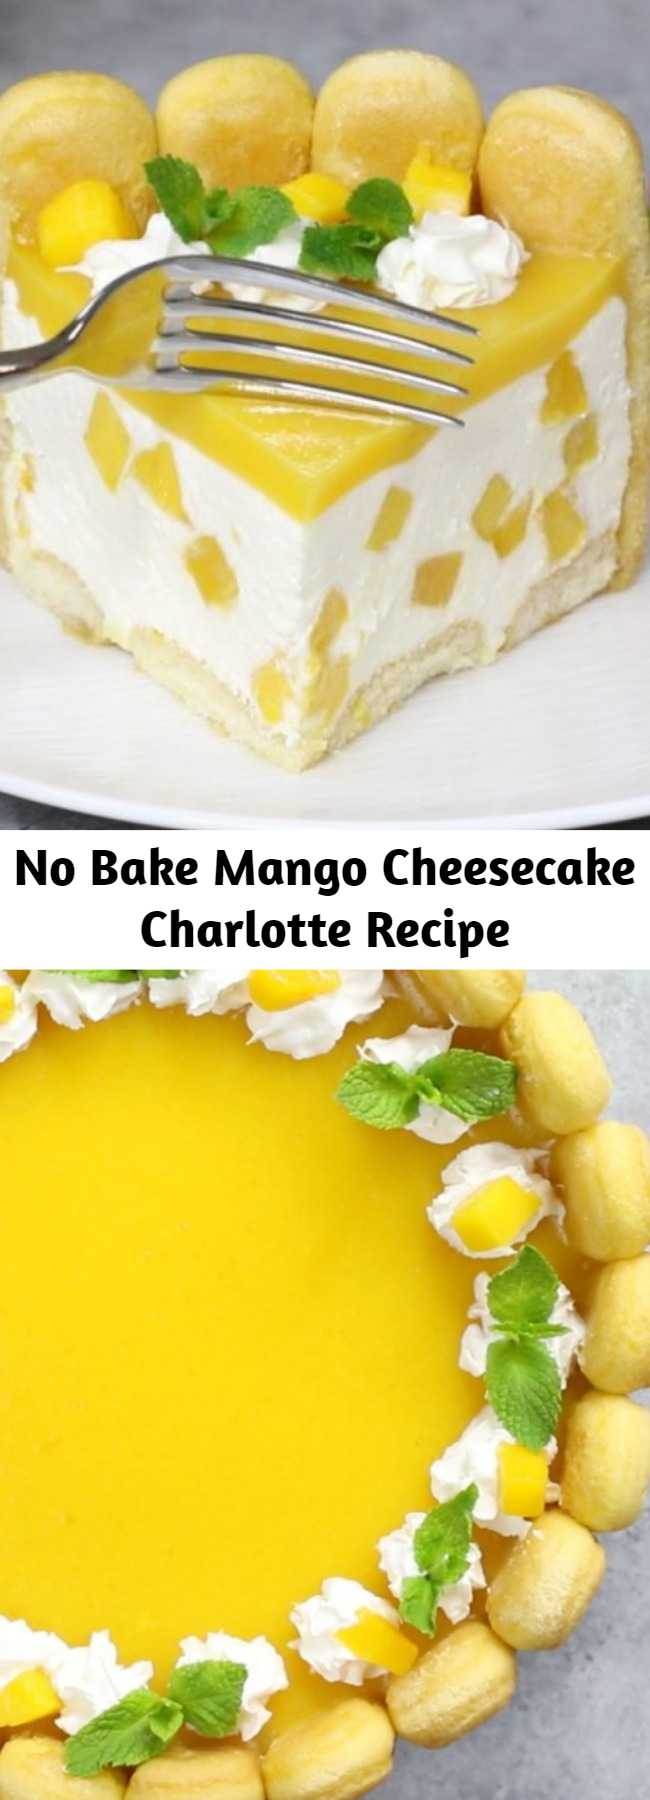 No Bake Mango Cheesecake Charlotte Recipe - Mango Cheesecake Charlotte is an irresistible no bake dessert with a ladyfinger crust, creamy cheesecake filling and a mango glaze on top. It's a refreshing make-ahead dessert bursting with fruity flavor and perfect for a party. #MangoCheesecake #NobakeCheesecake